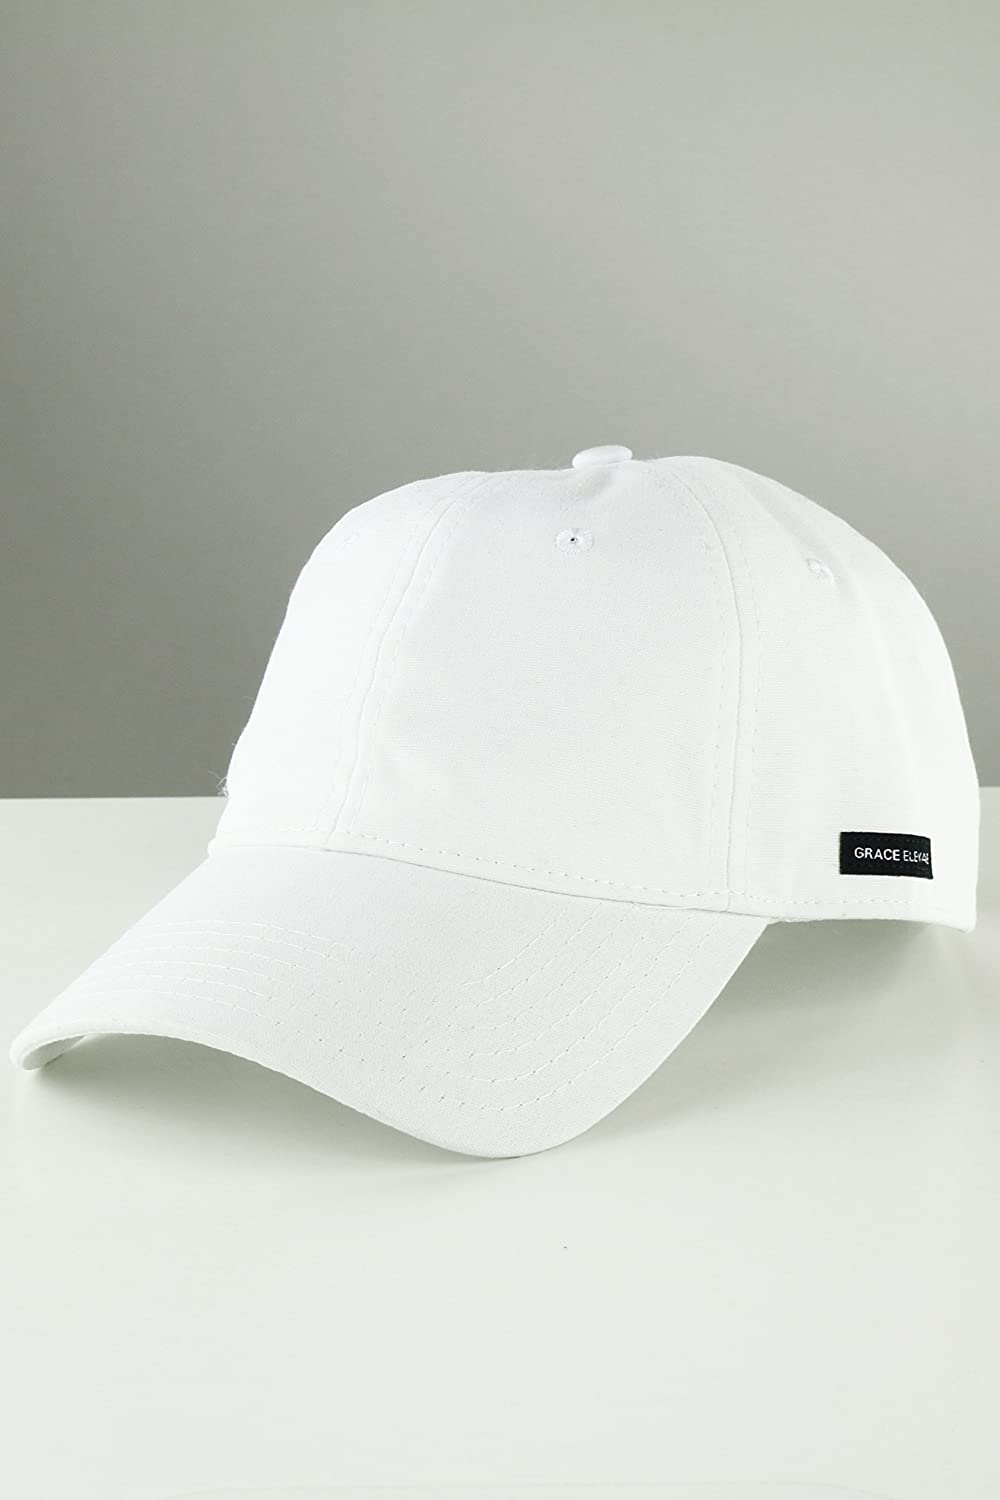 b4aecb2309 Grace Eleyae Women's Baseball Cap - SLAP - Satin Lined Dad Hat, White:  Amazon.ca: Clothing & Accessories